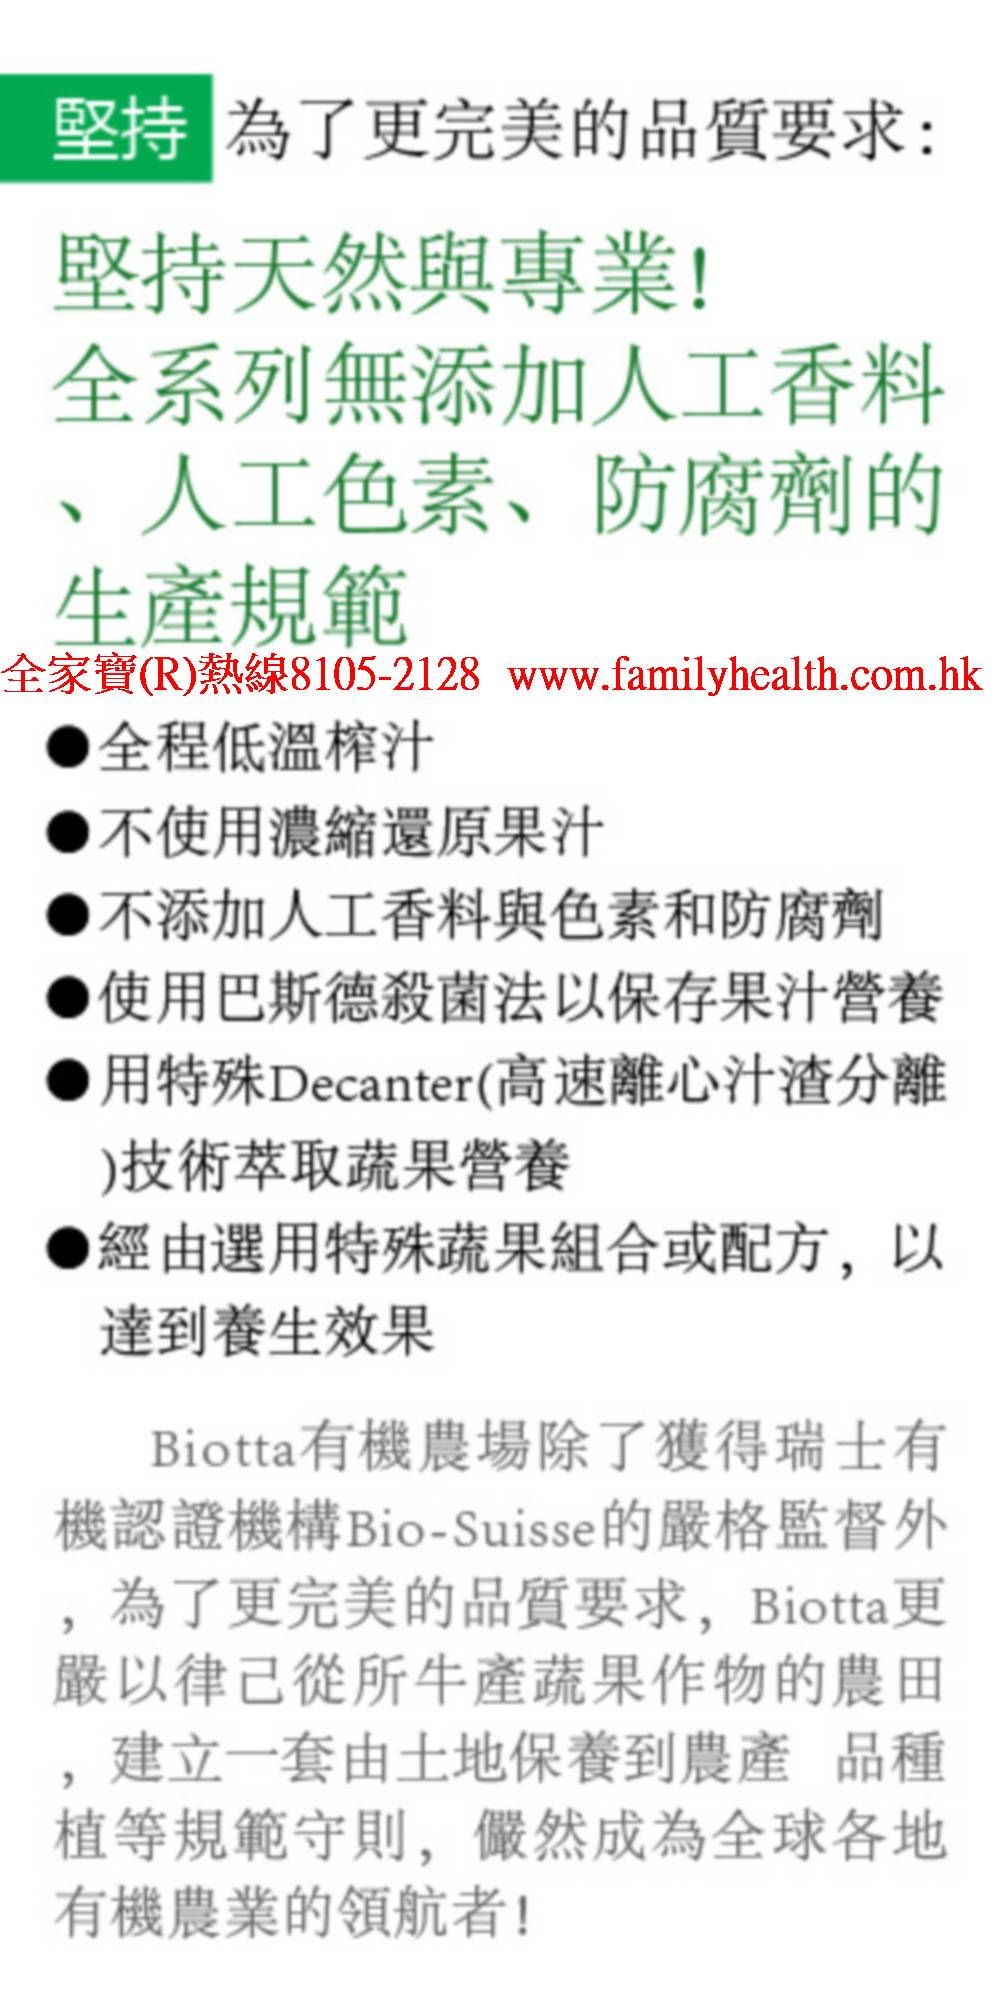 http://www.familyhealth.com.hk/files/full/944_4.jpg